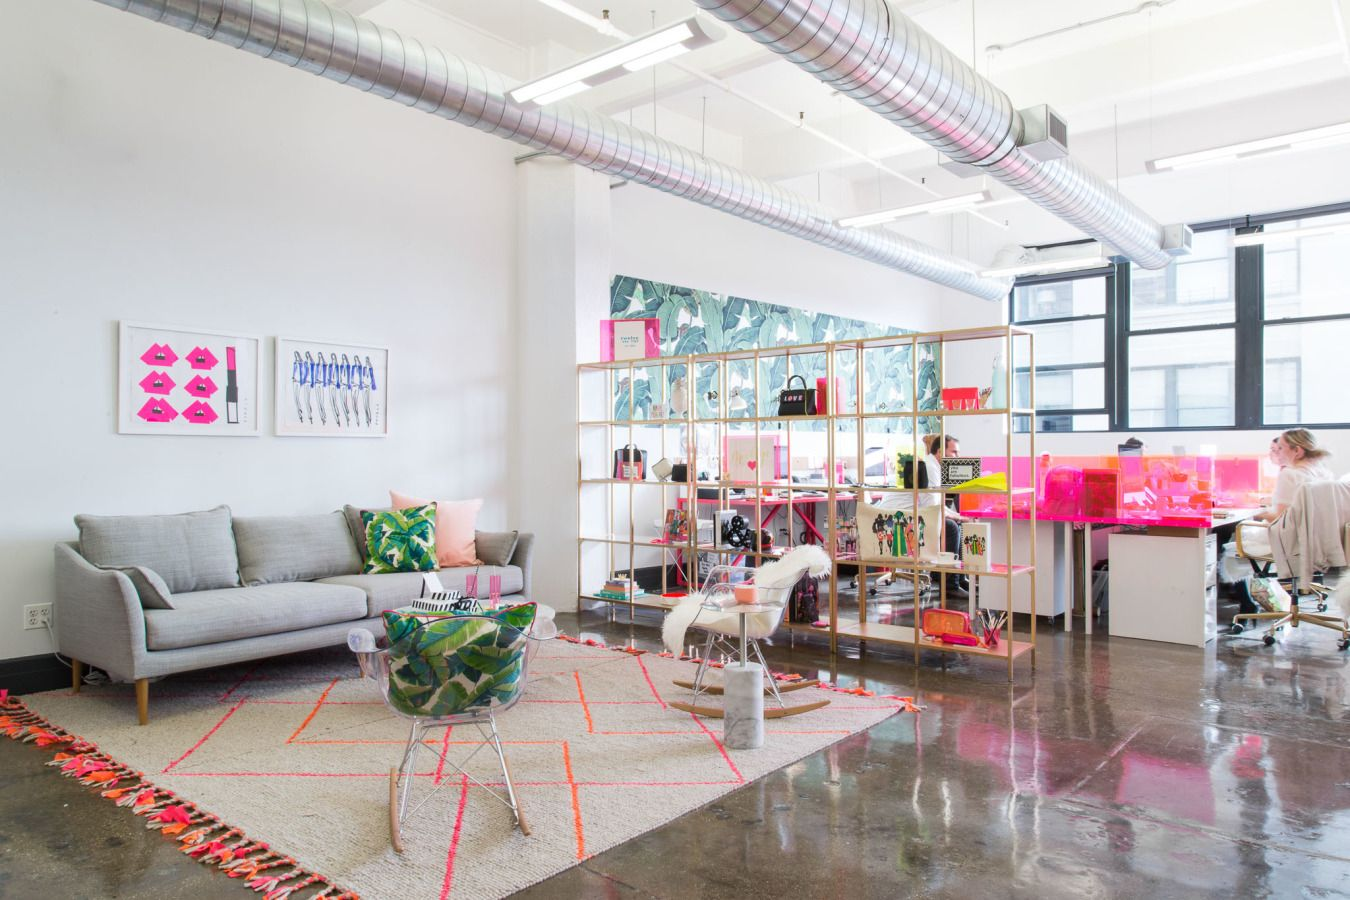 At TwelveNYC, a product development agency in the DUMBO neighborhood of Brooklyn, Homepolish's Tina Apostolou channeled the company's creativity into an office absolutely full of color.